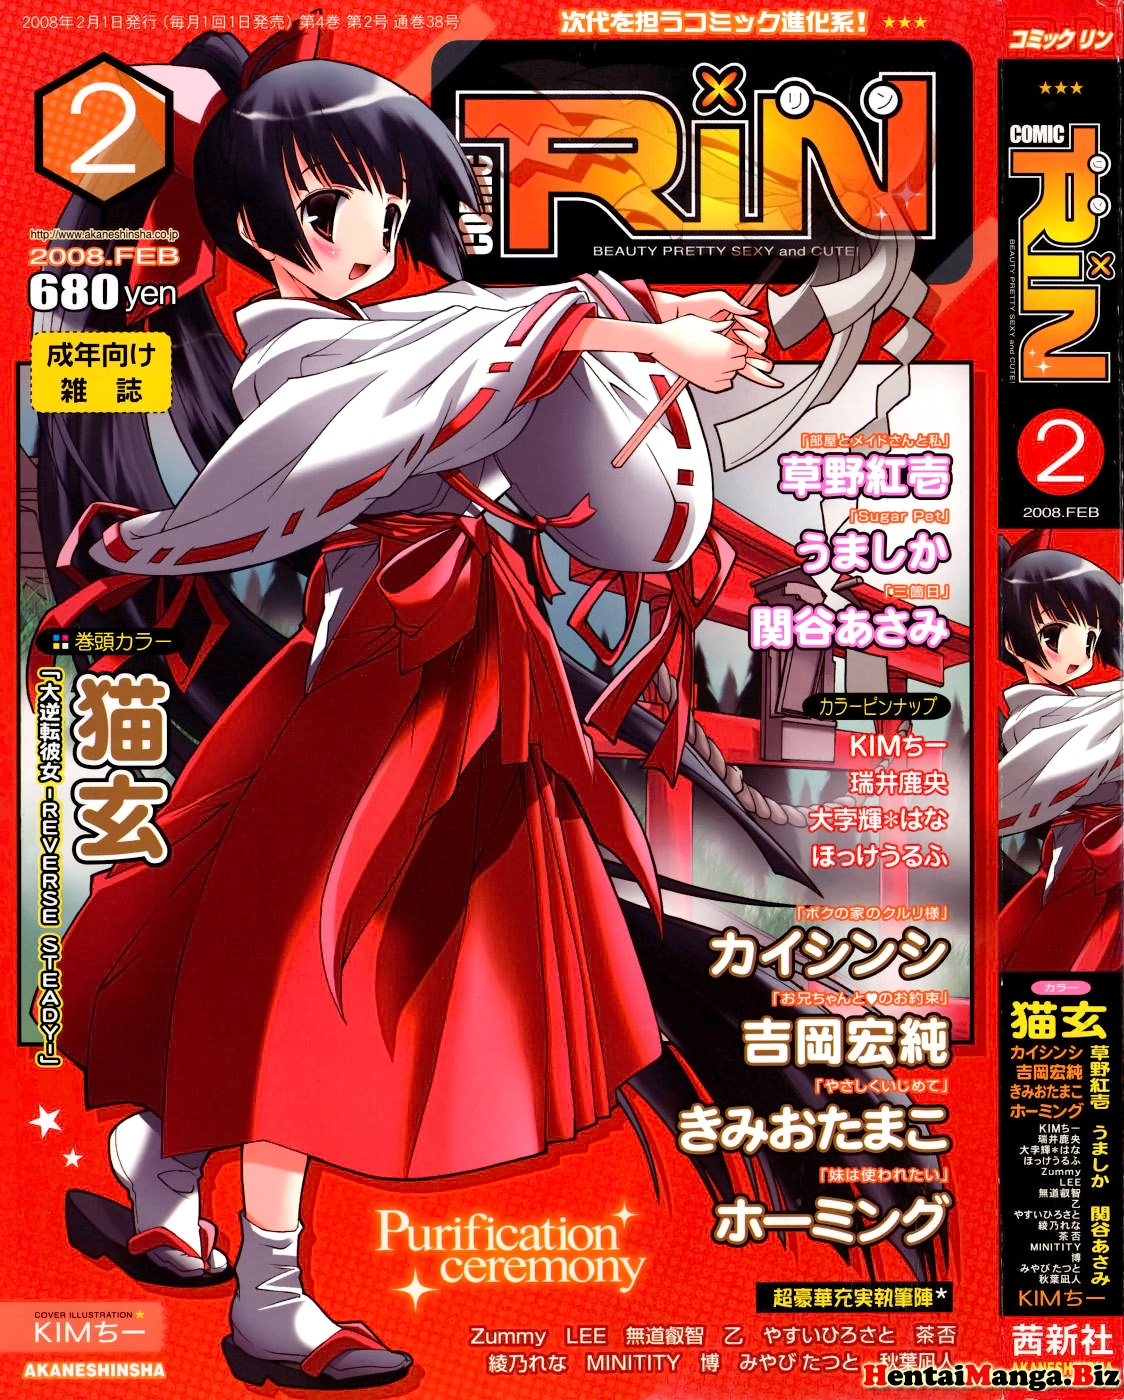 Incest Hentai - COMIC RiN 2008-02-Read-Hentai-Manga-Onlnie